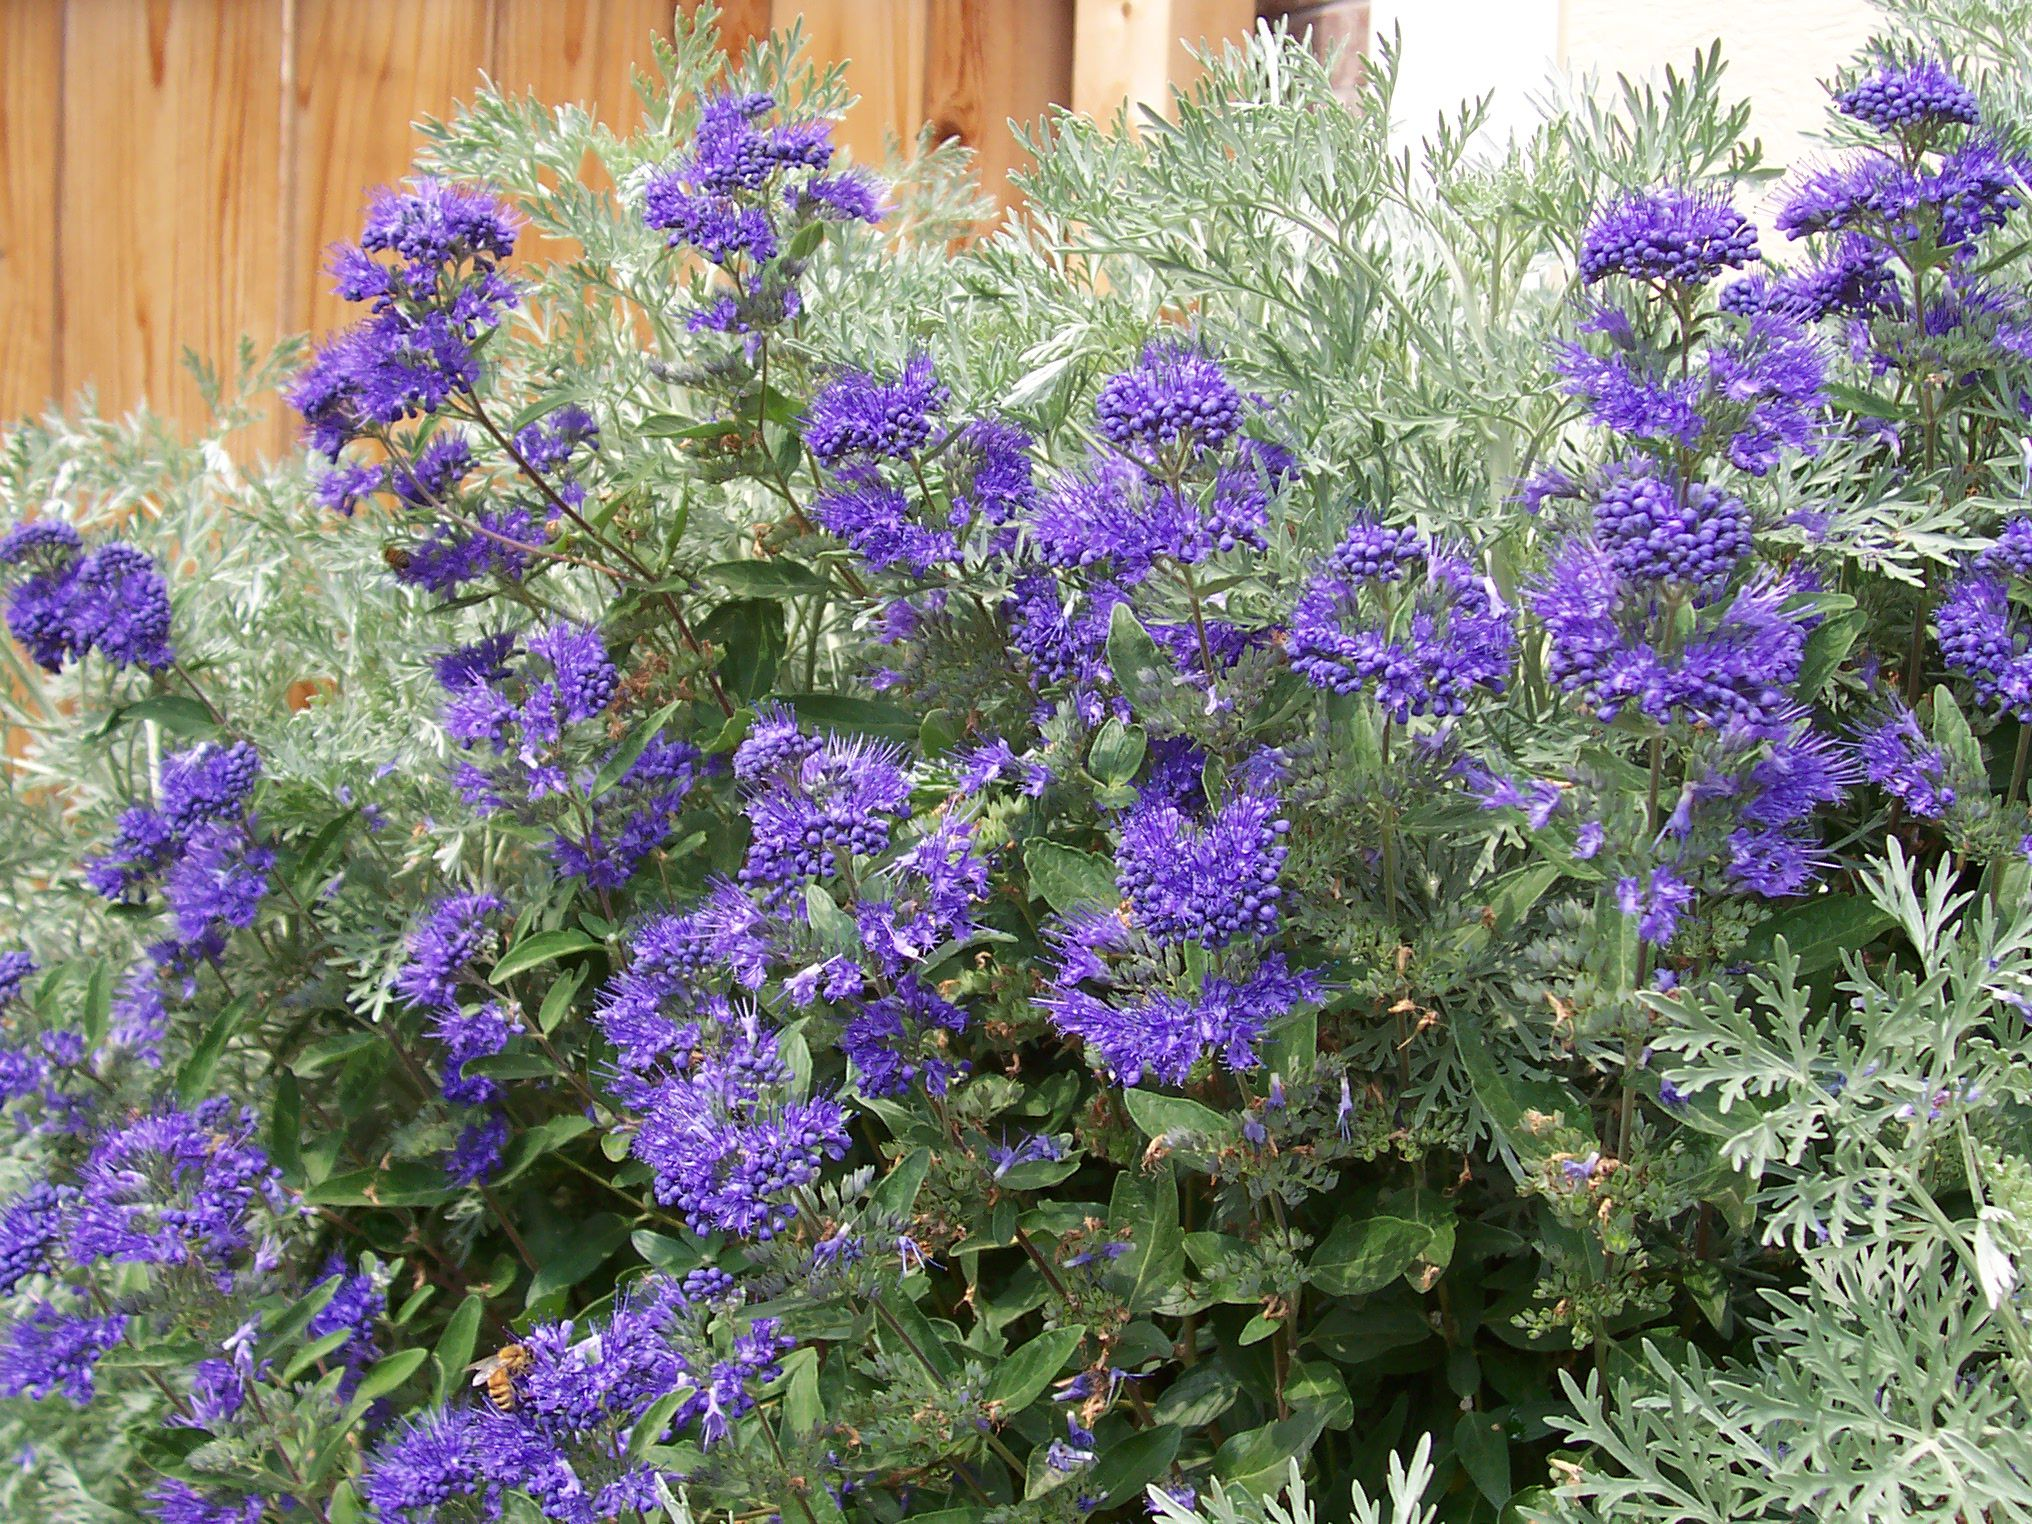 Pictures of flowering shrubs for landscaping ideas for Large bushes for landscaping